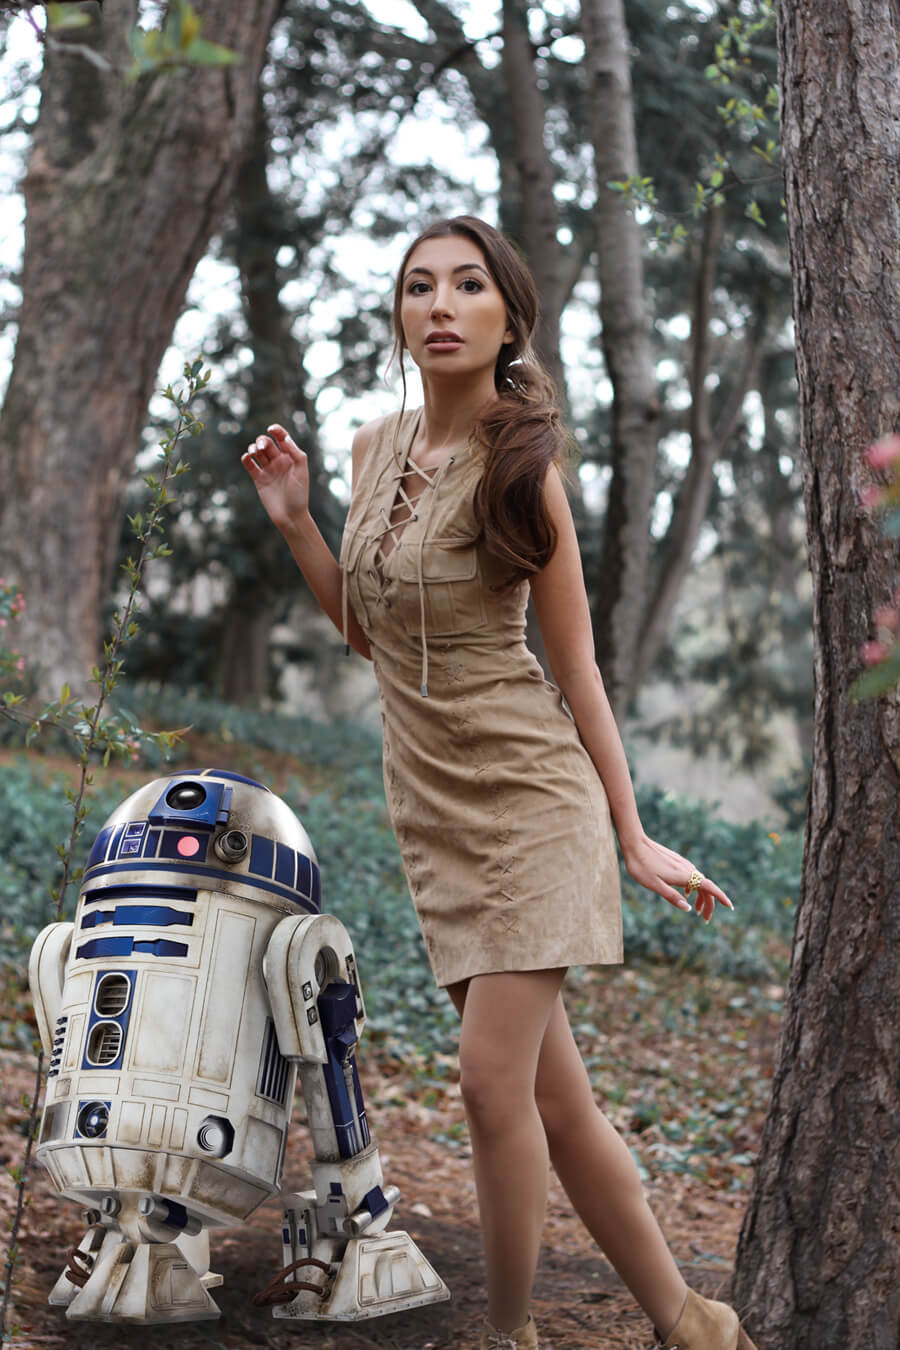 R2D2, did you hear that? I think someone is following us!